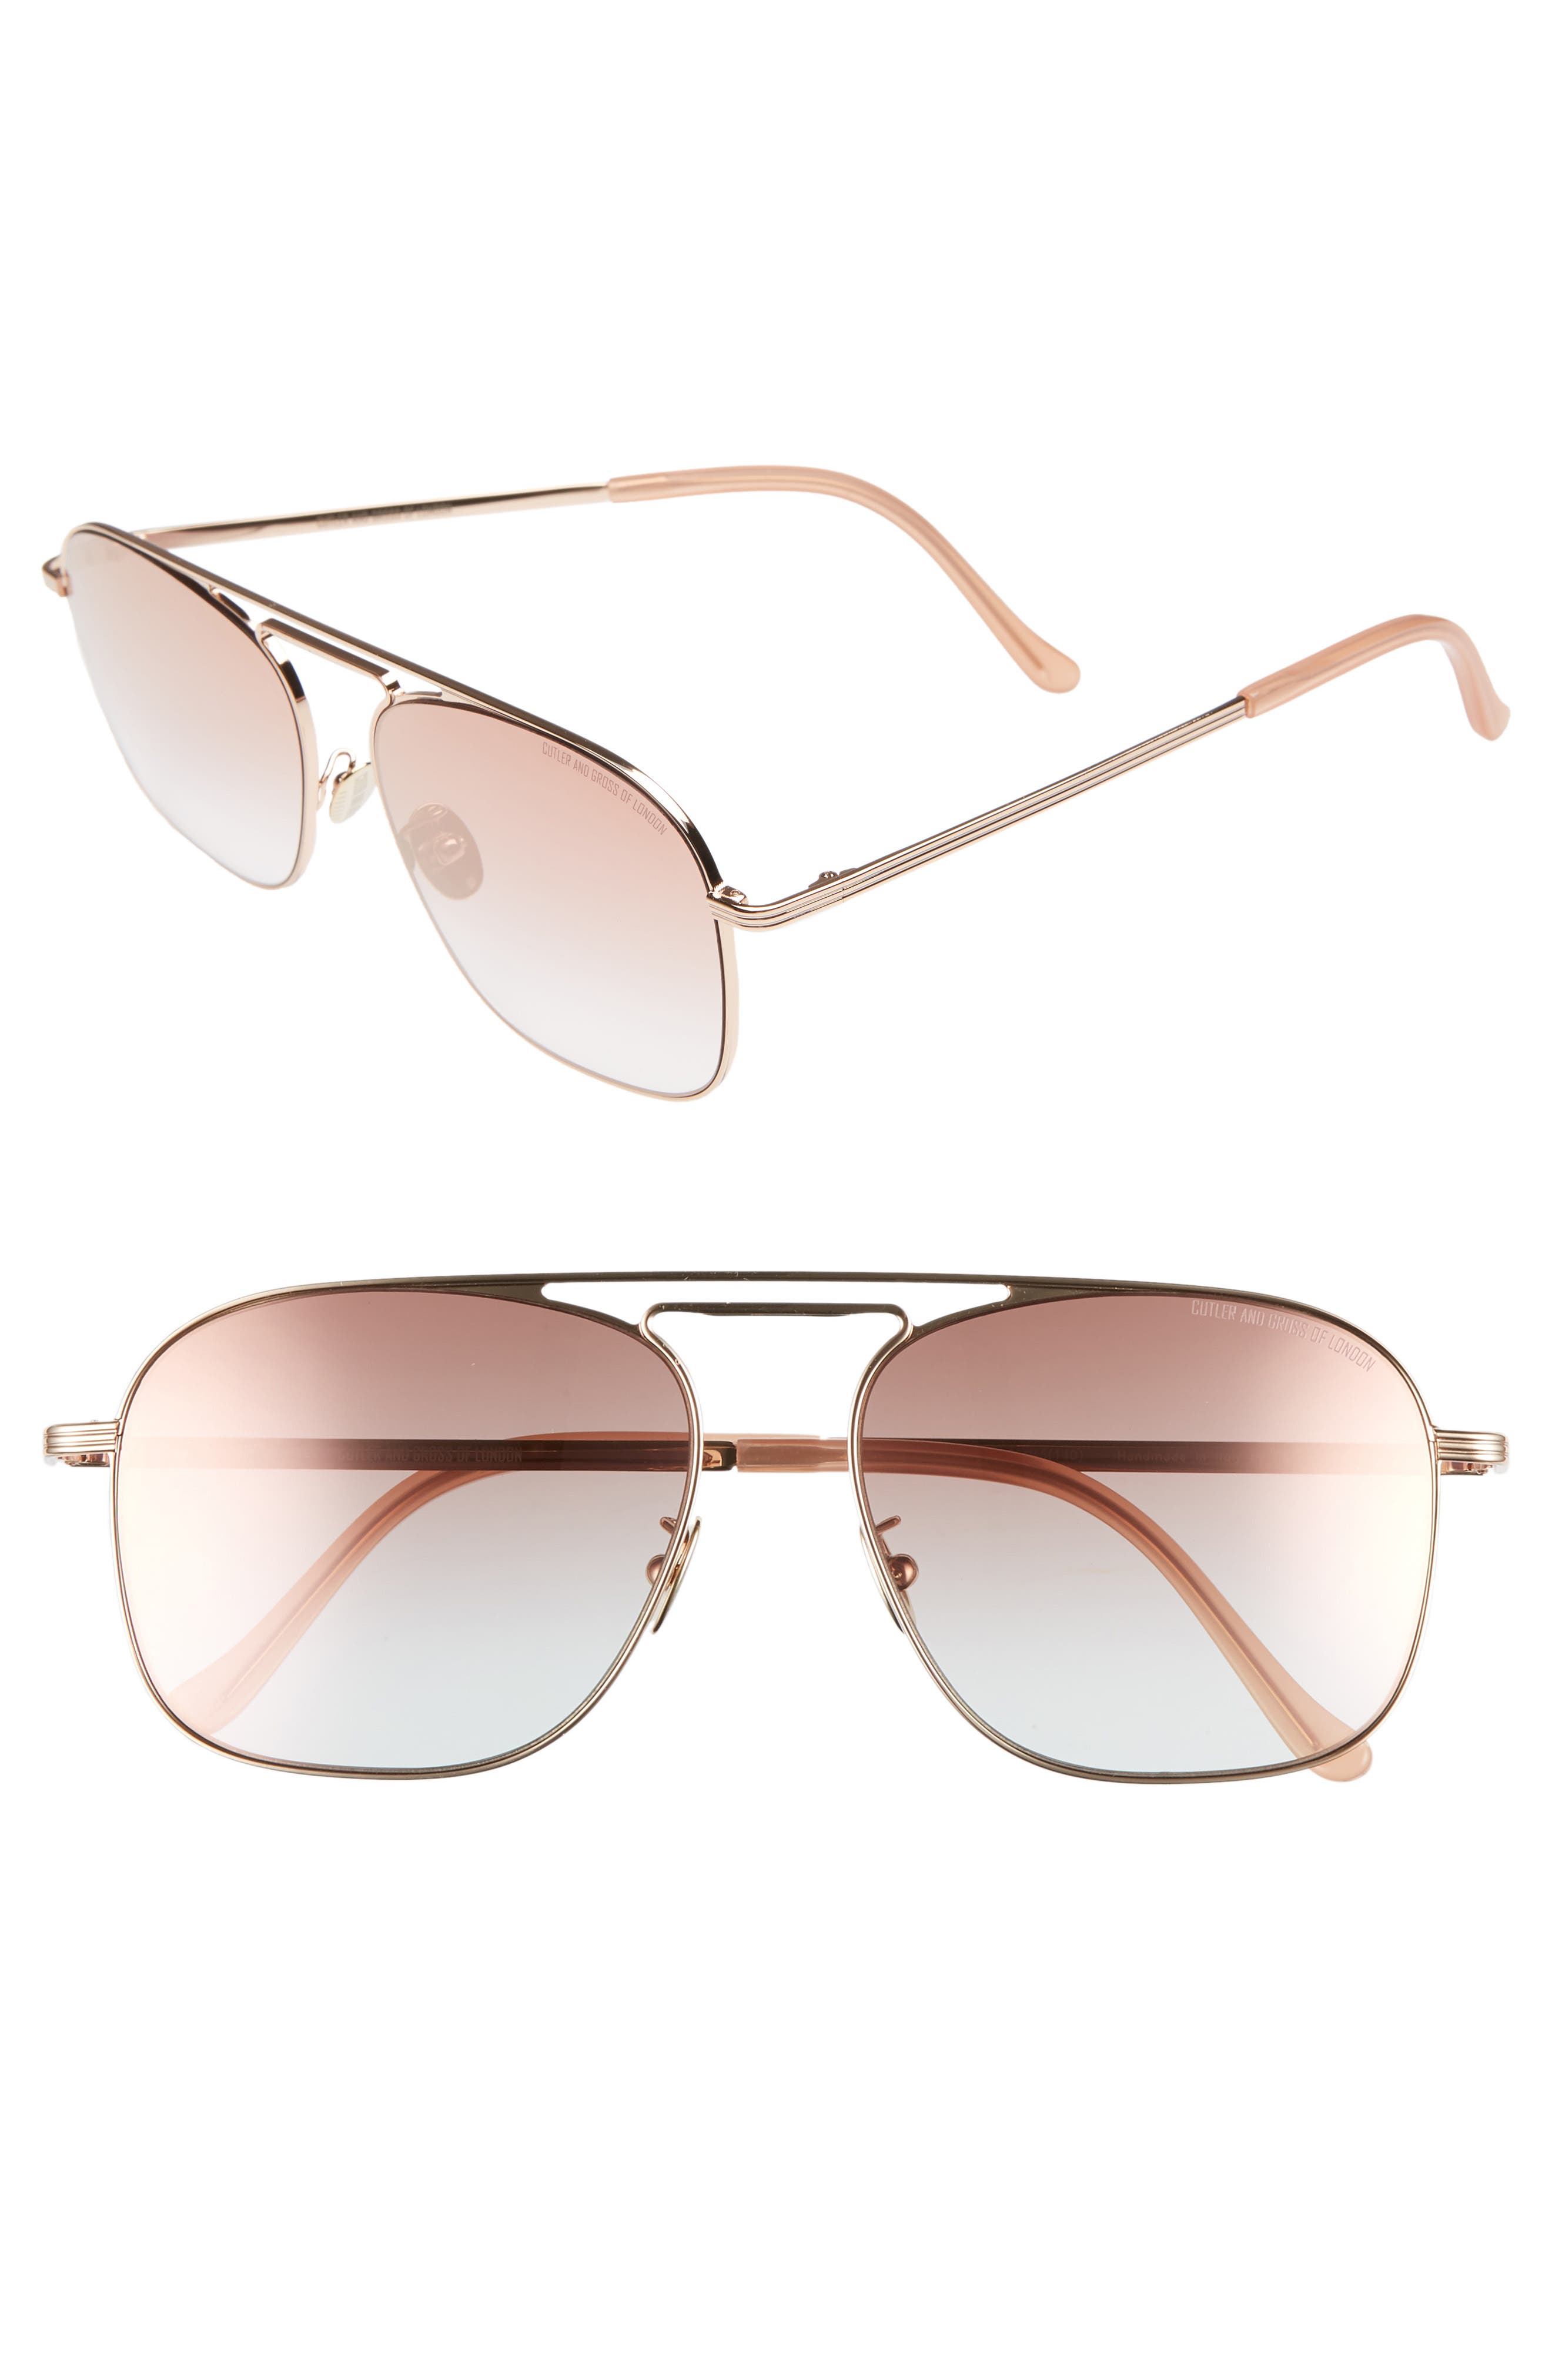 56mm Polarized Navigator Sunglasses,                             Main thumbnail 1, color,                             ROSE GOLD/ PINK CHAMPAGNE